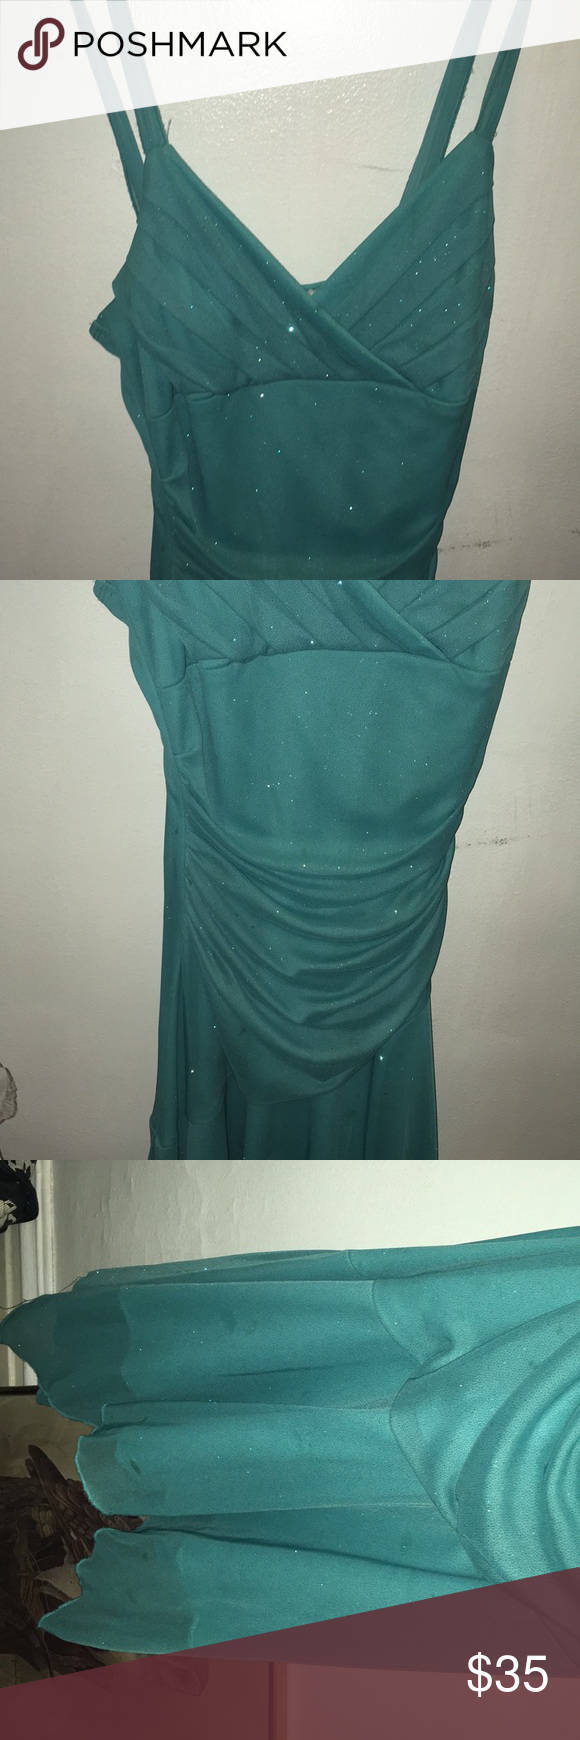 Prom Dress Vintage Early 2000 S Prom Dresses Vintage Prom Dresses Vintage Dresses [ 1740 x 580 Pixel ]